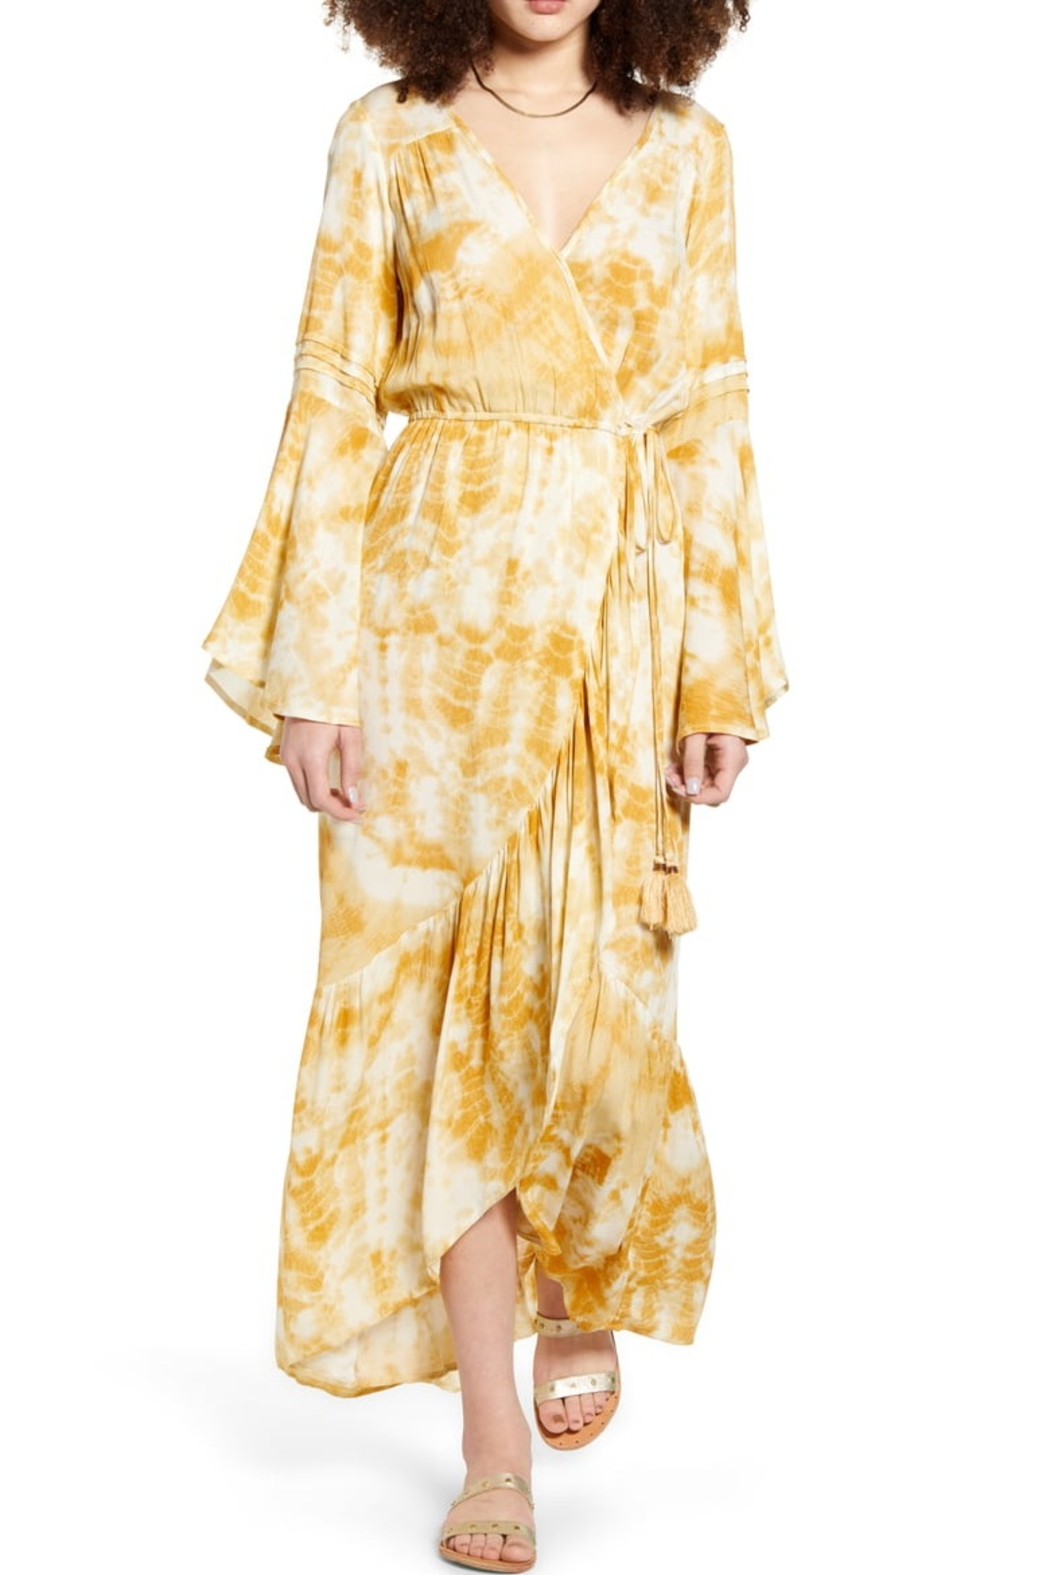 Band Of Gypsies ZION MAXI DRESS - Main Image